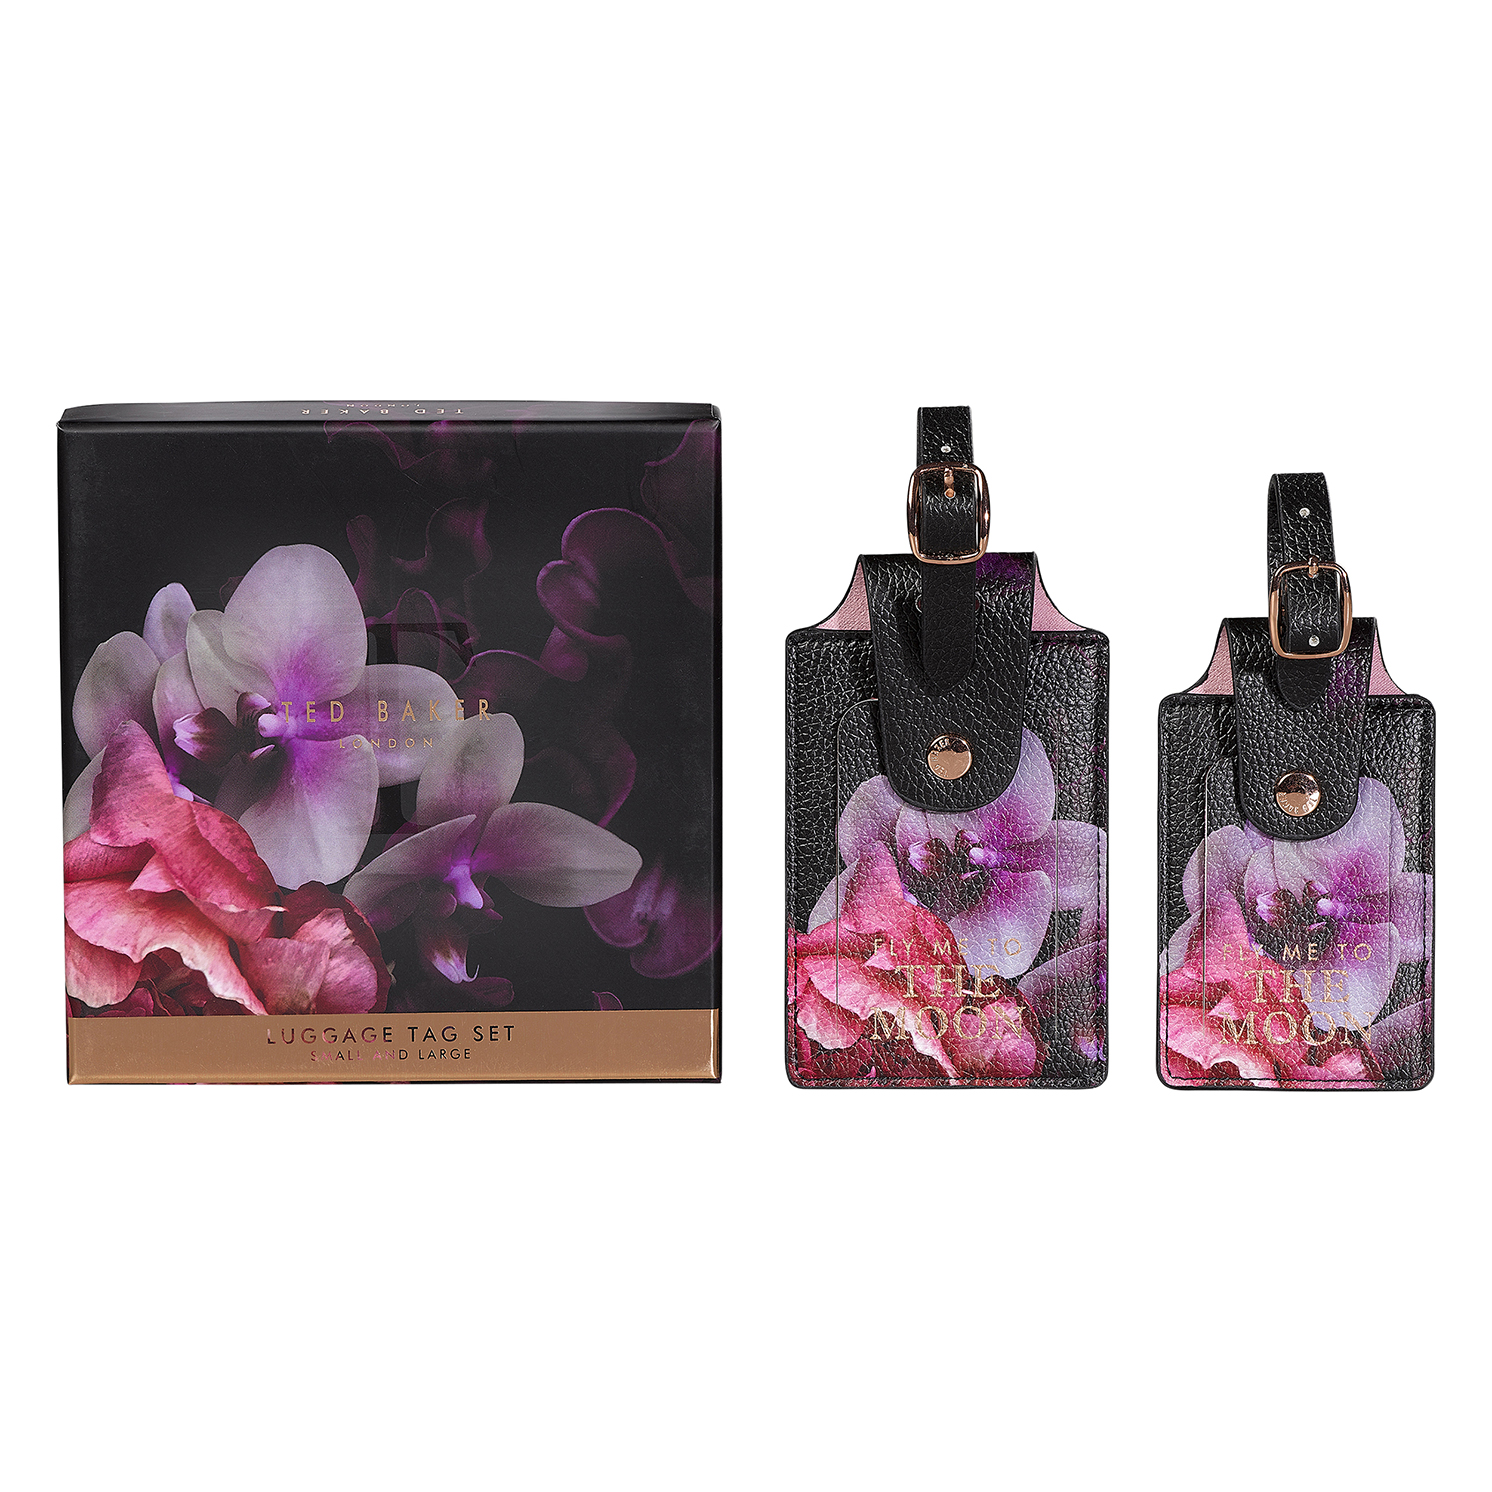 Ted Baker – Set of 2 Black Splendour Luggage Tags in Presentation Gift Box